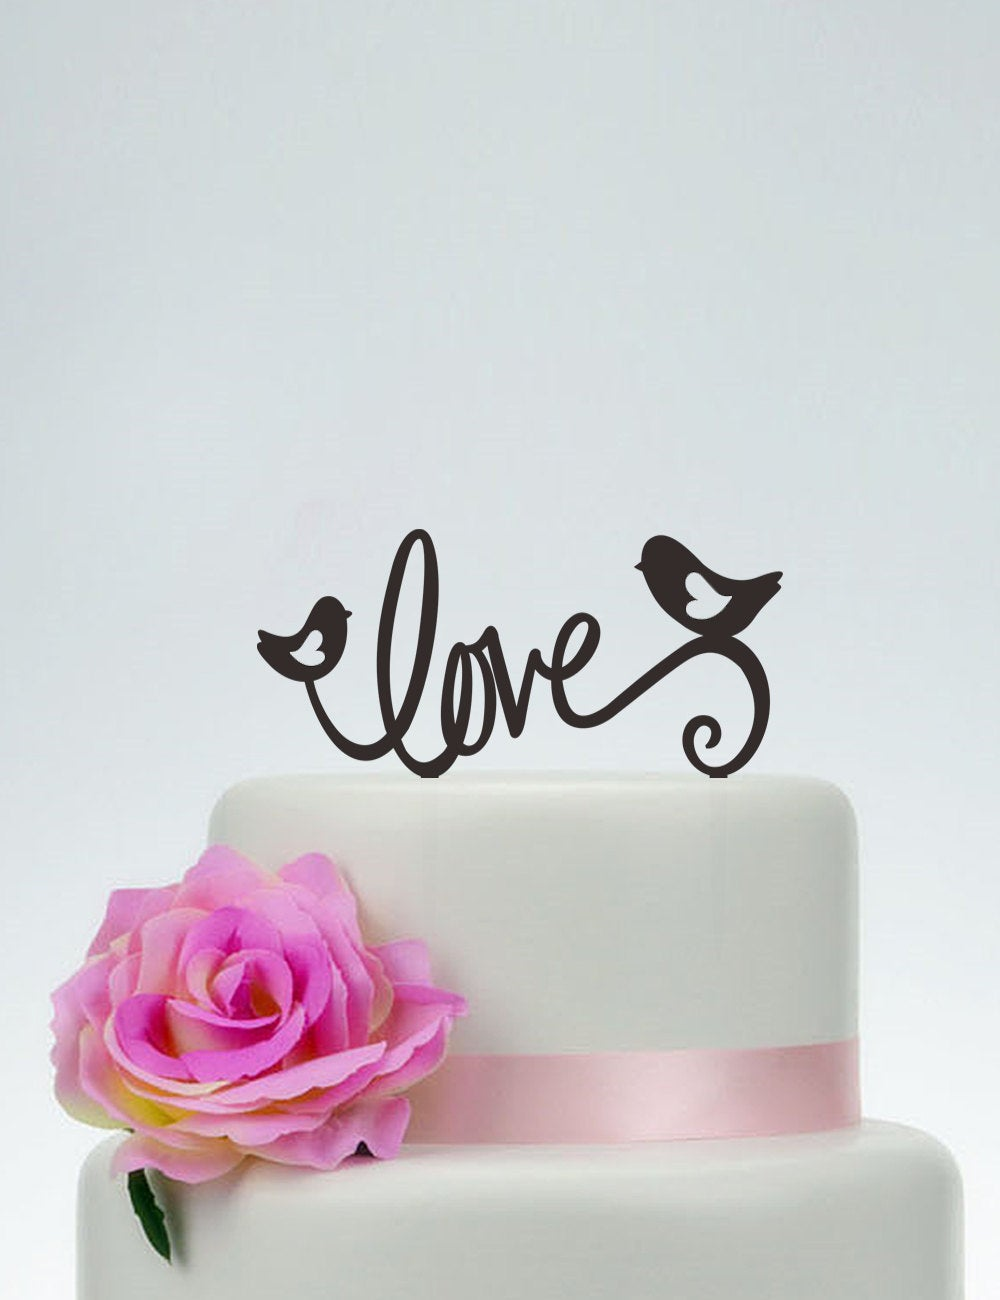 Love Cake Topper, Love Birds Topper, Wedding Topper, Personalized Decoration, Custom Topper P125